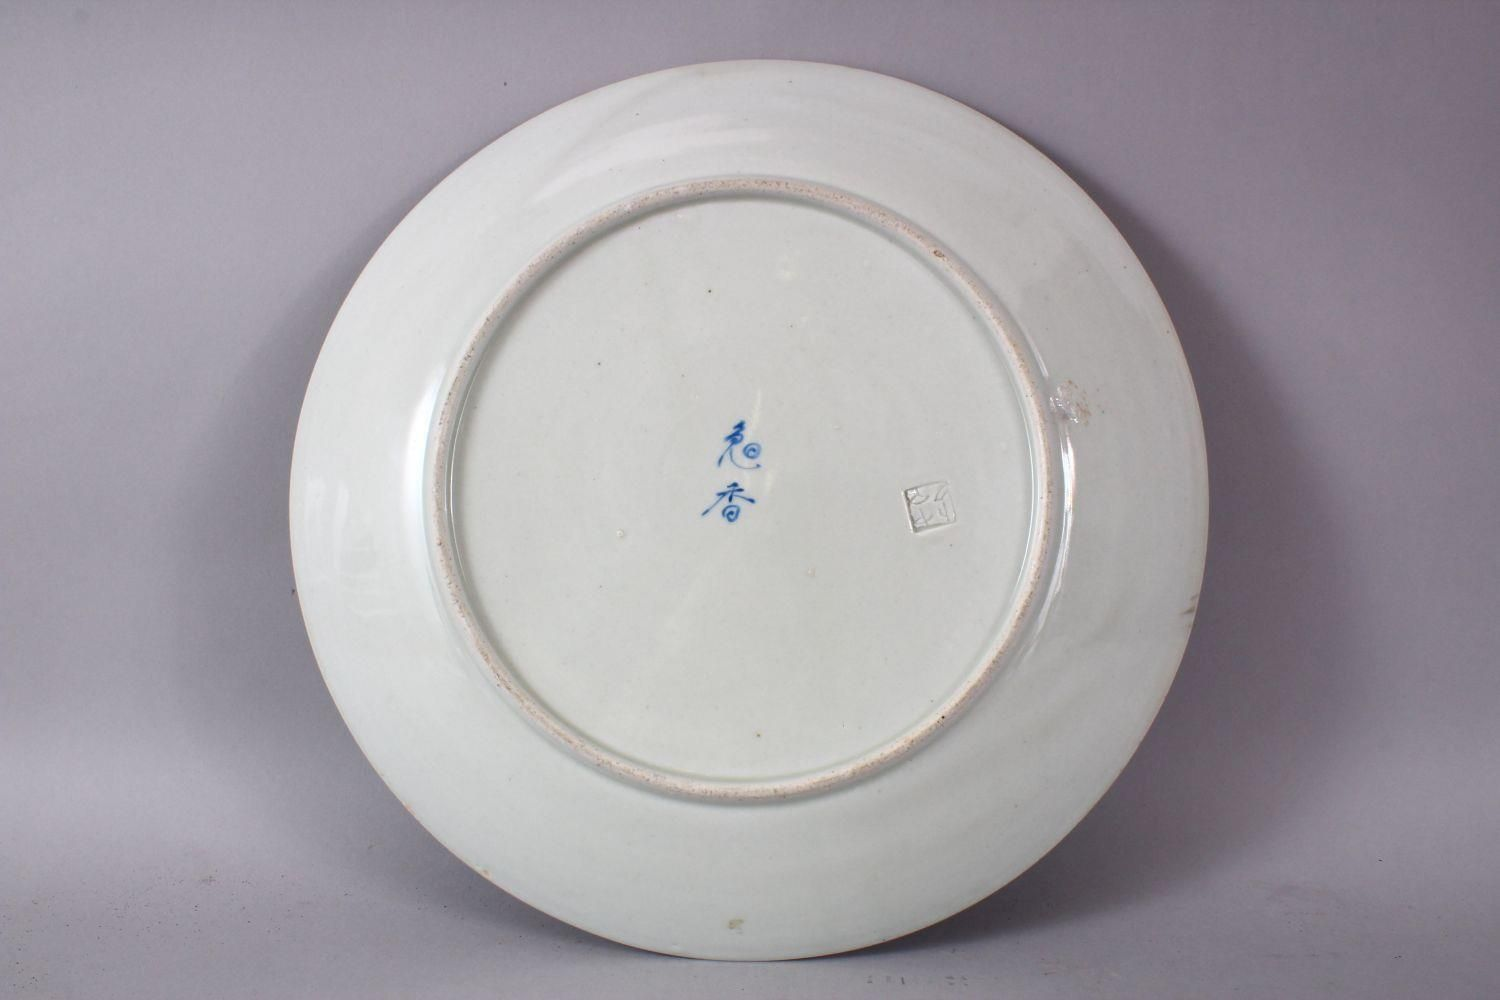 A 19TH CENTURY CHINESE FAMILLE ROSE PORCELAIN PLATE OF SCHOLARS, the decoration depicting a - Image 7 of 9